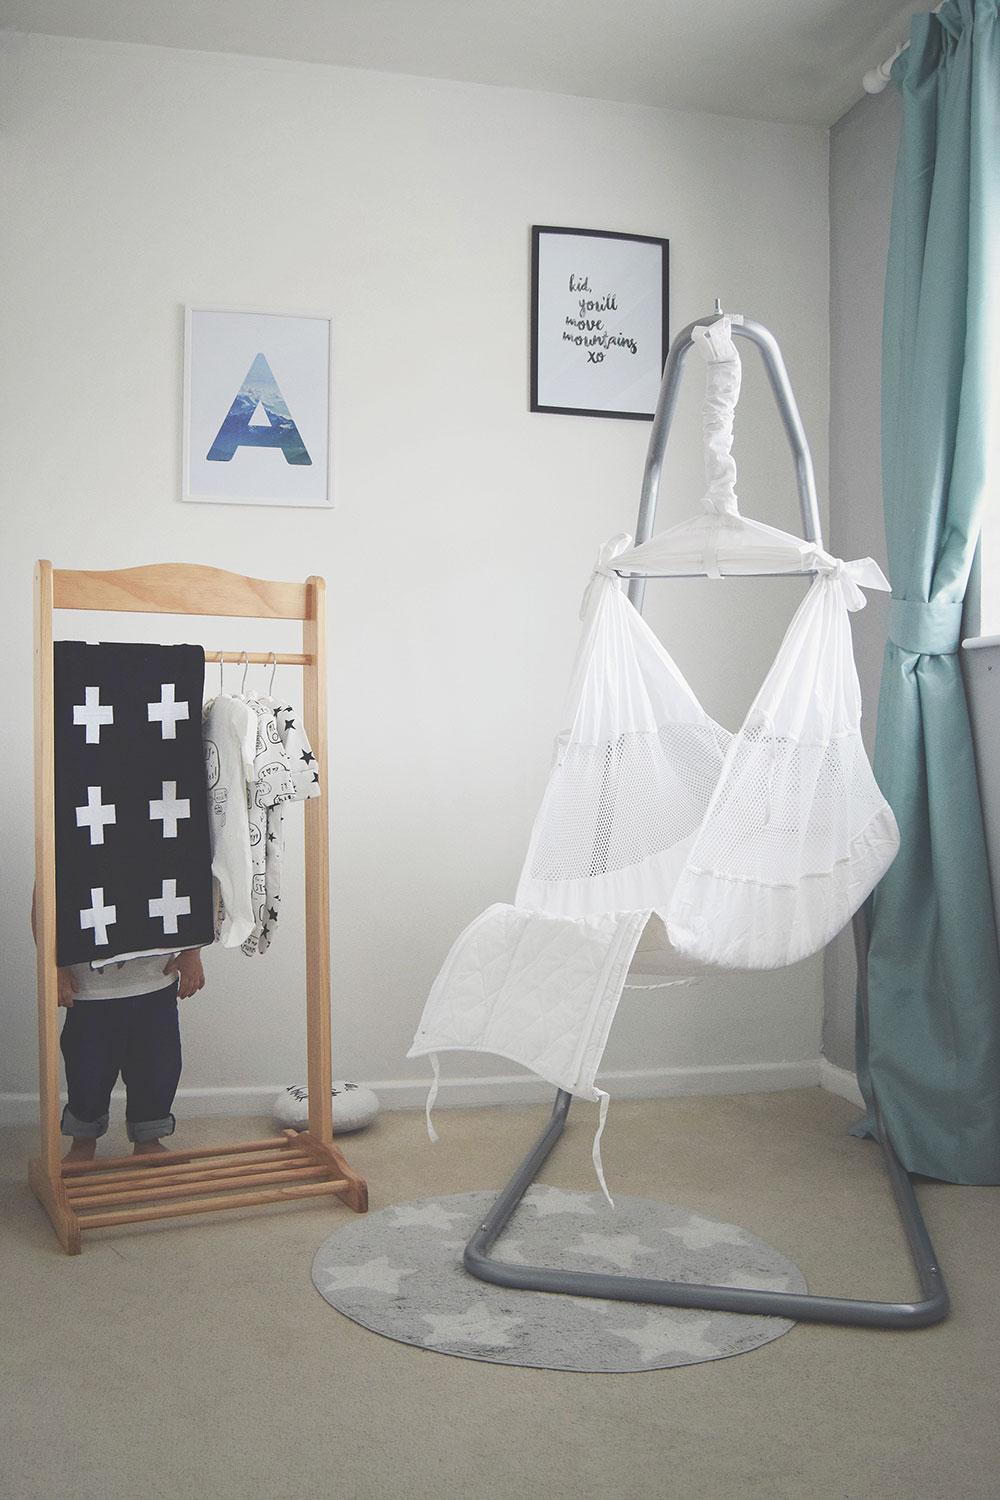 Poco Baby Hammock; Our First Impressions - Alternative to baby crib, for night and naps, baby sleep solution preventing colic and wind, creating feeling of being in the womb